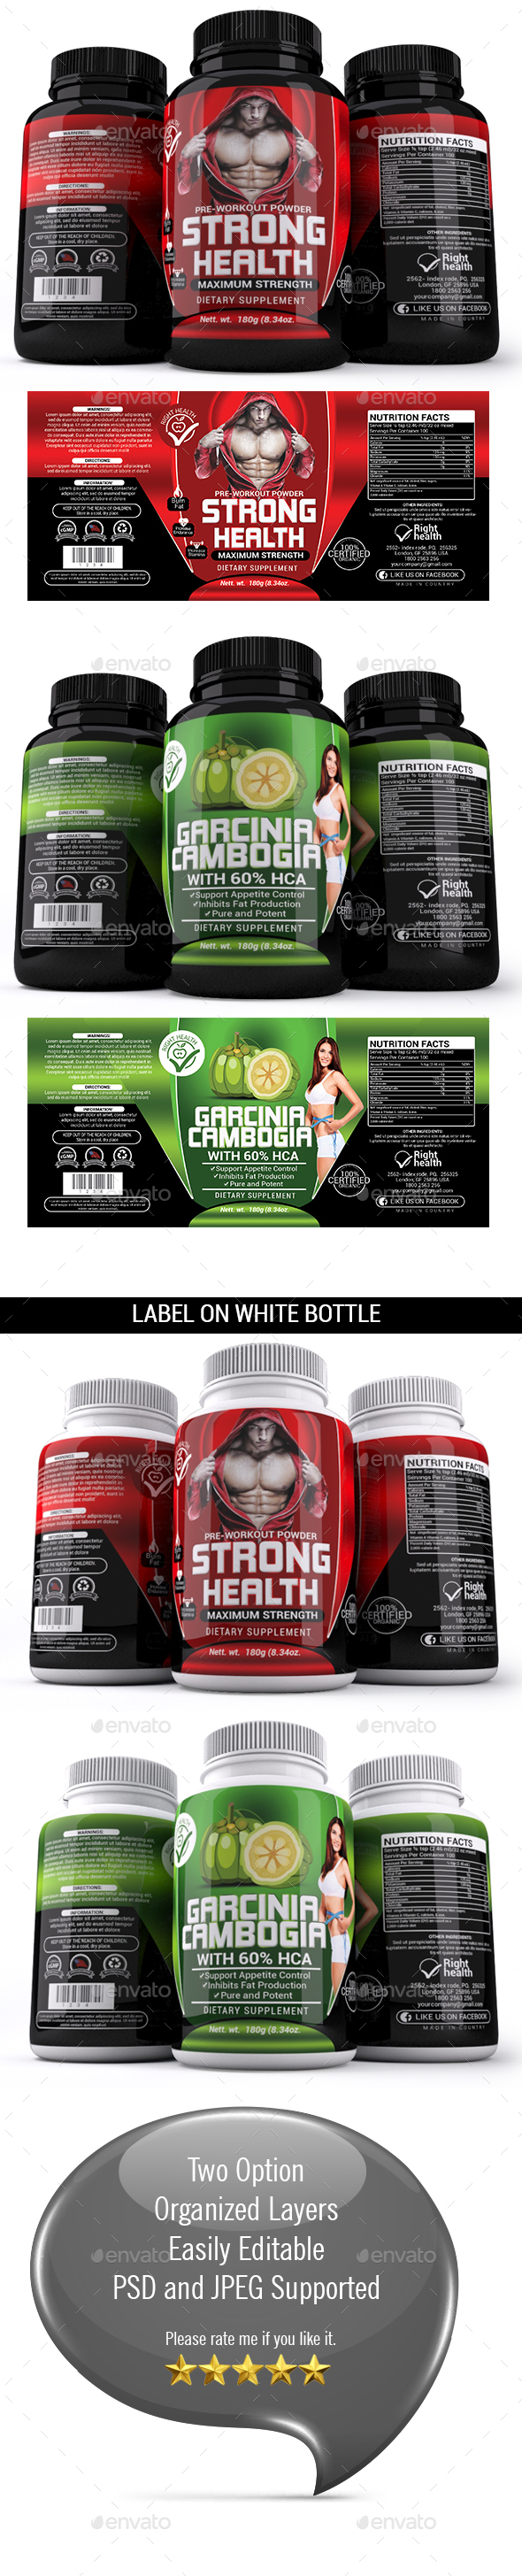 Supplement Label Template - 018 - Packaging Print Templates